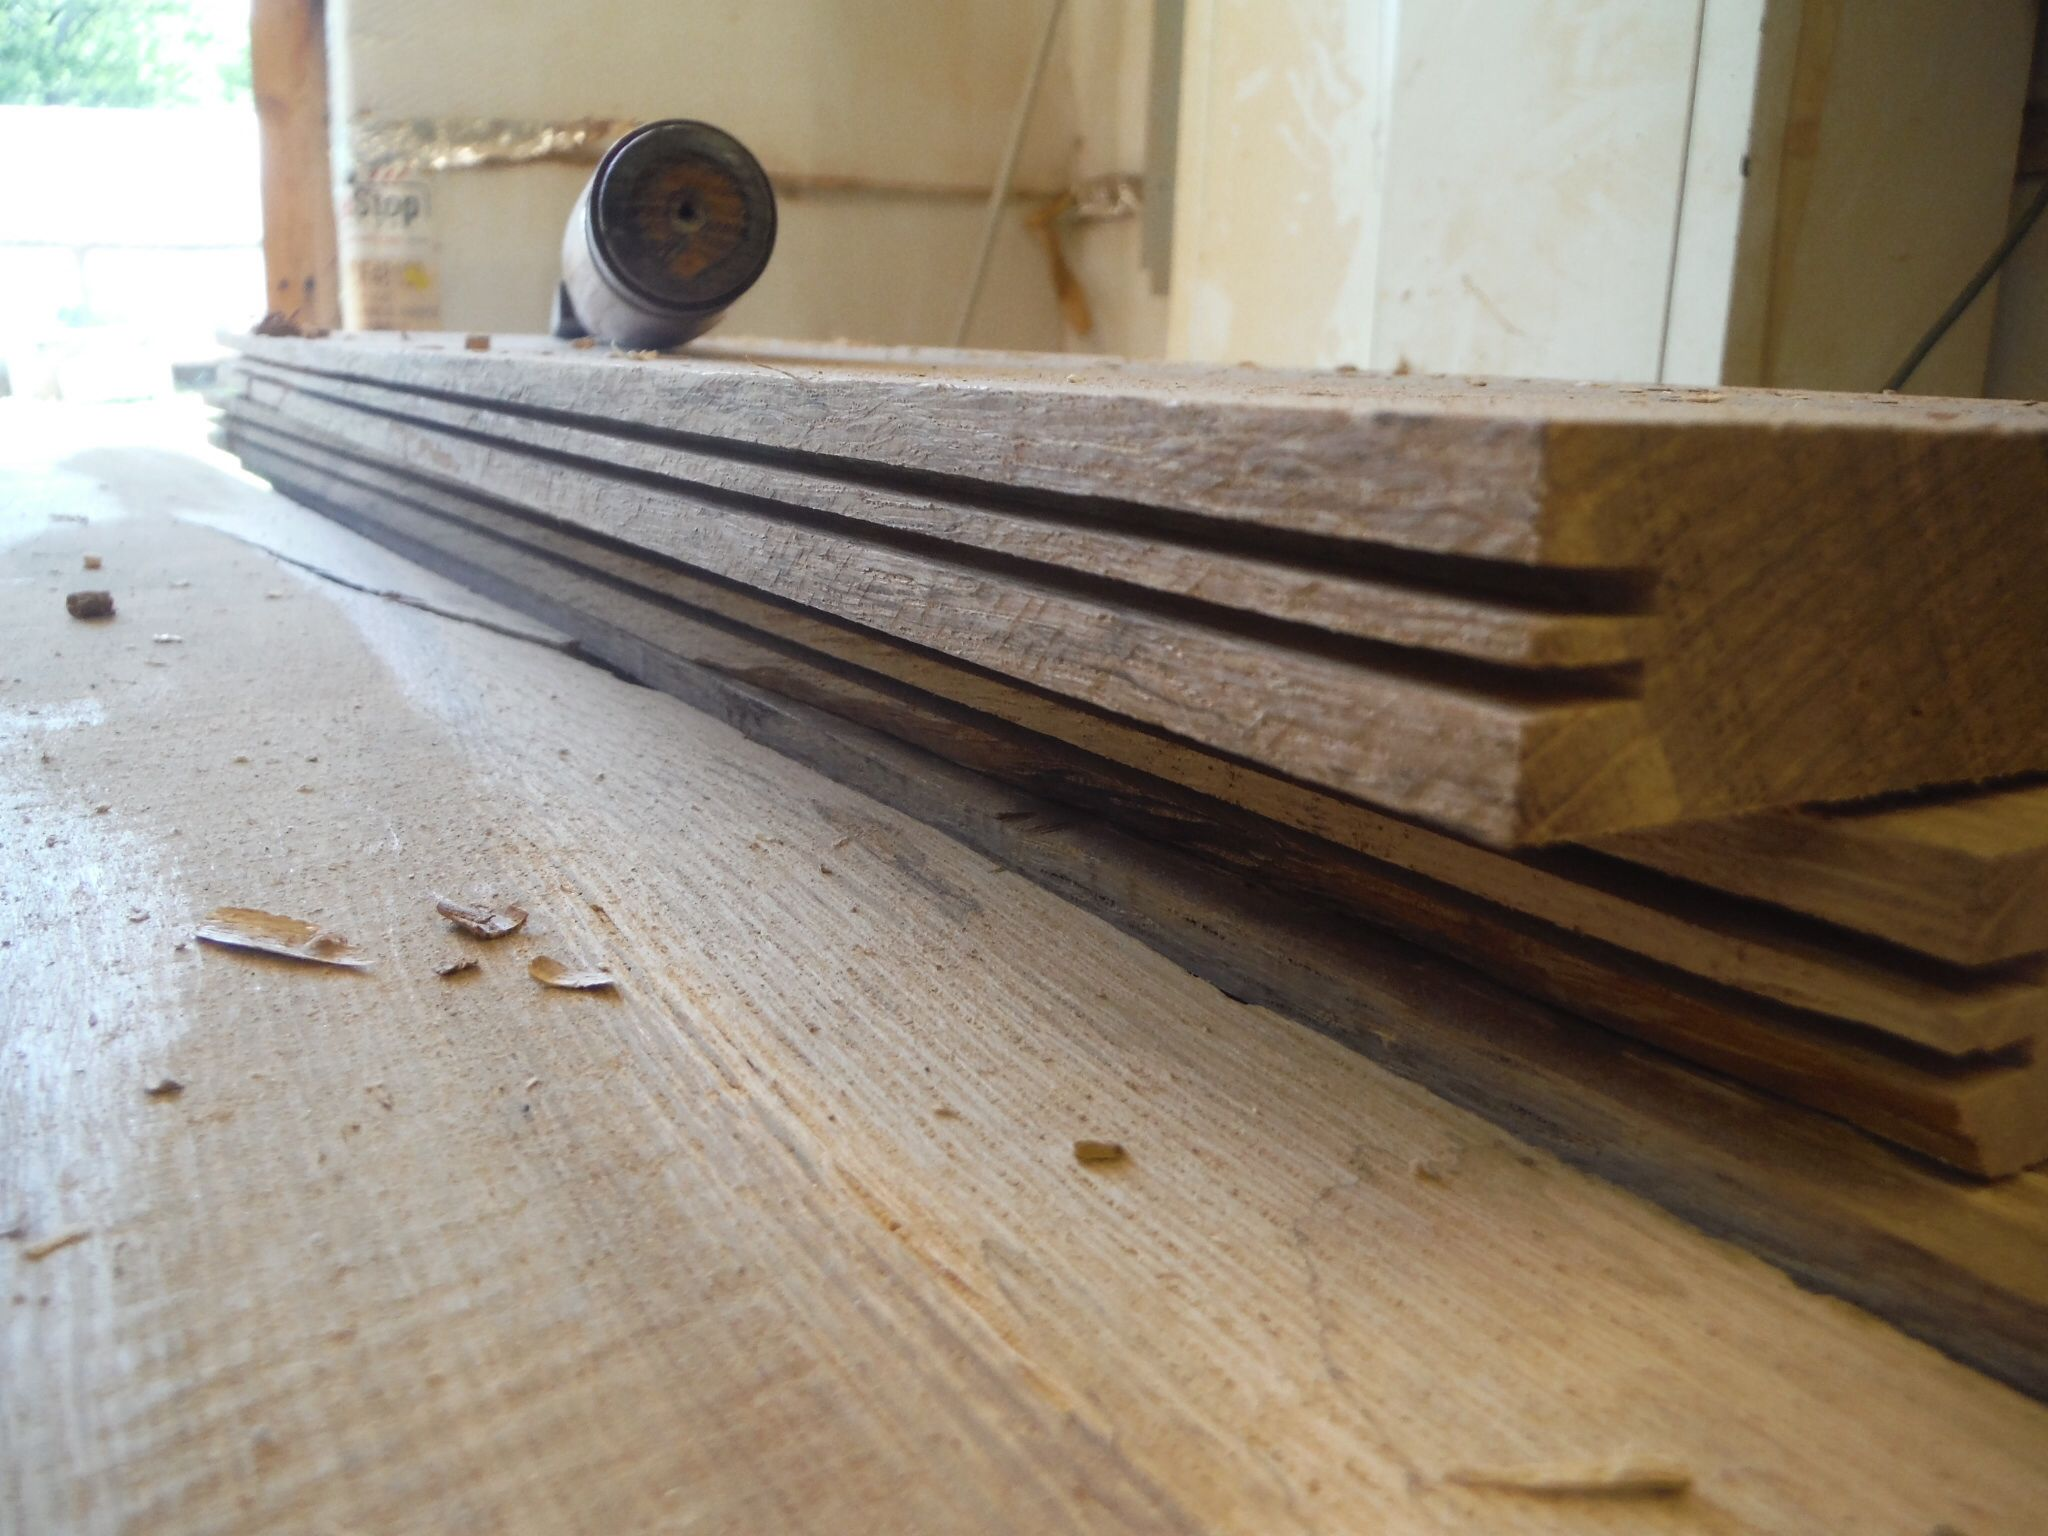 Using The Table Saw And Chisel To Make The Tongue And Groove Panel